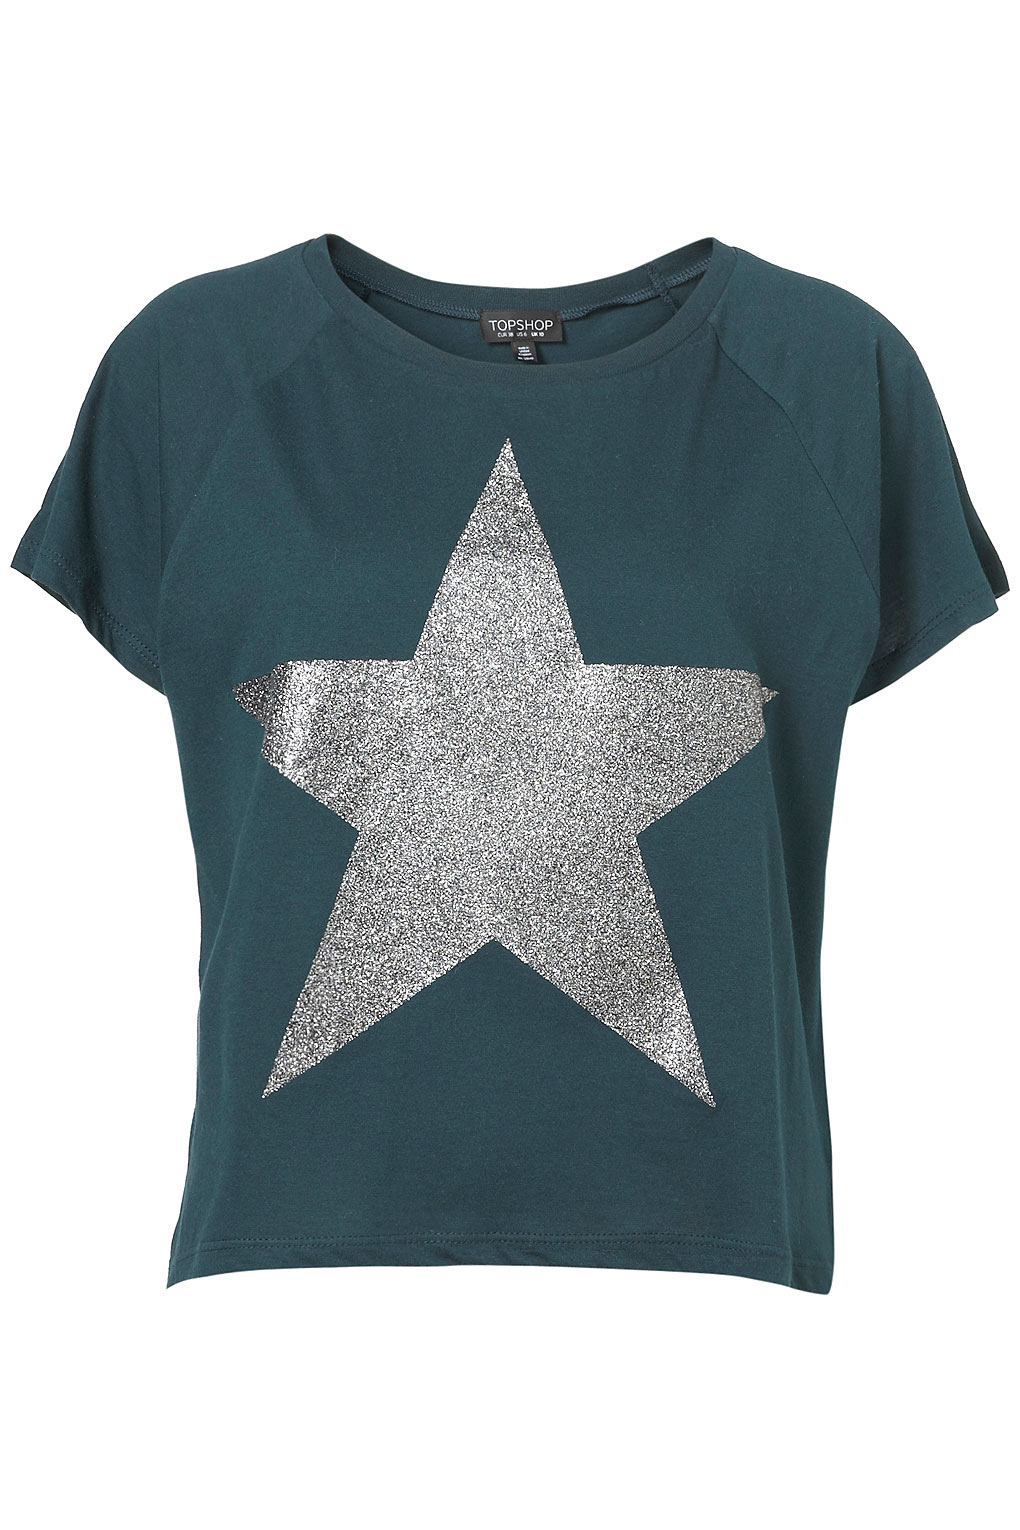 6a1c72b759a4 TOPSHOP Glitter Star Tee in Gray - Lyst